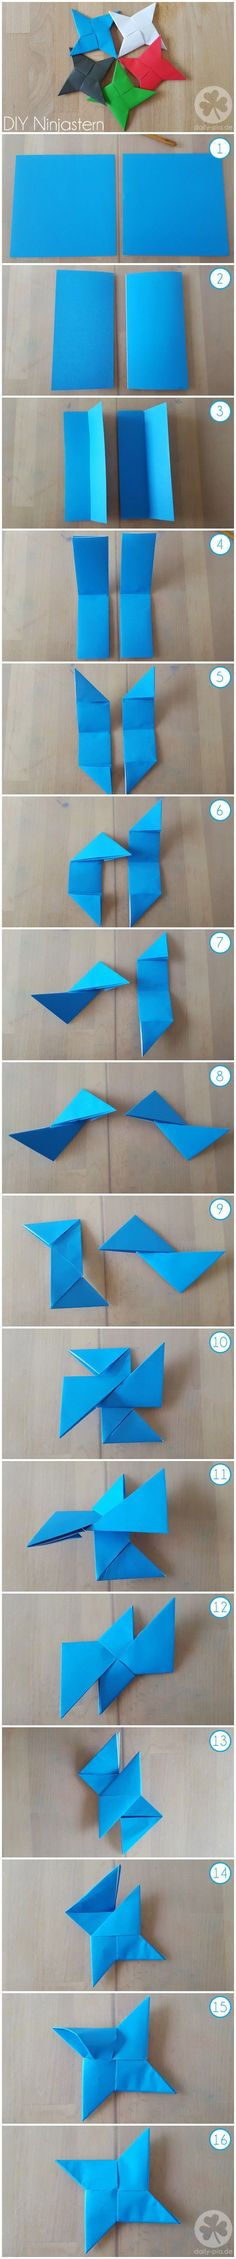 how to make a ninja star easy instructions